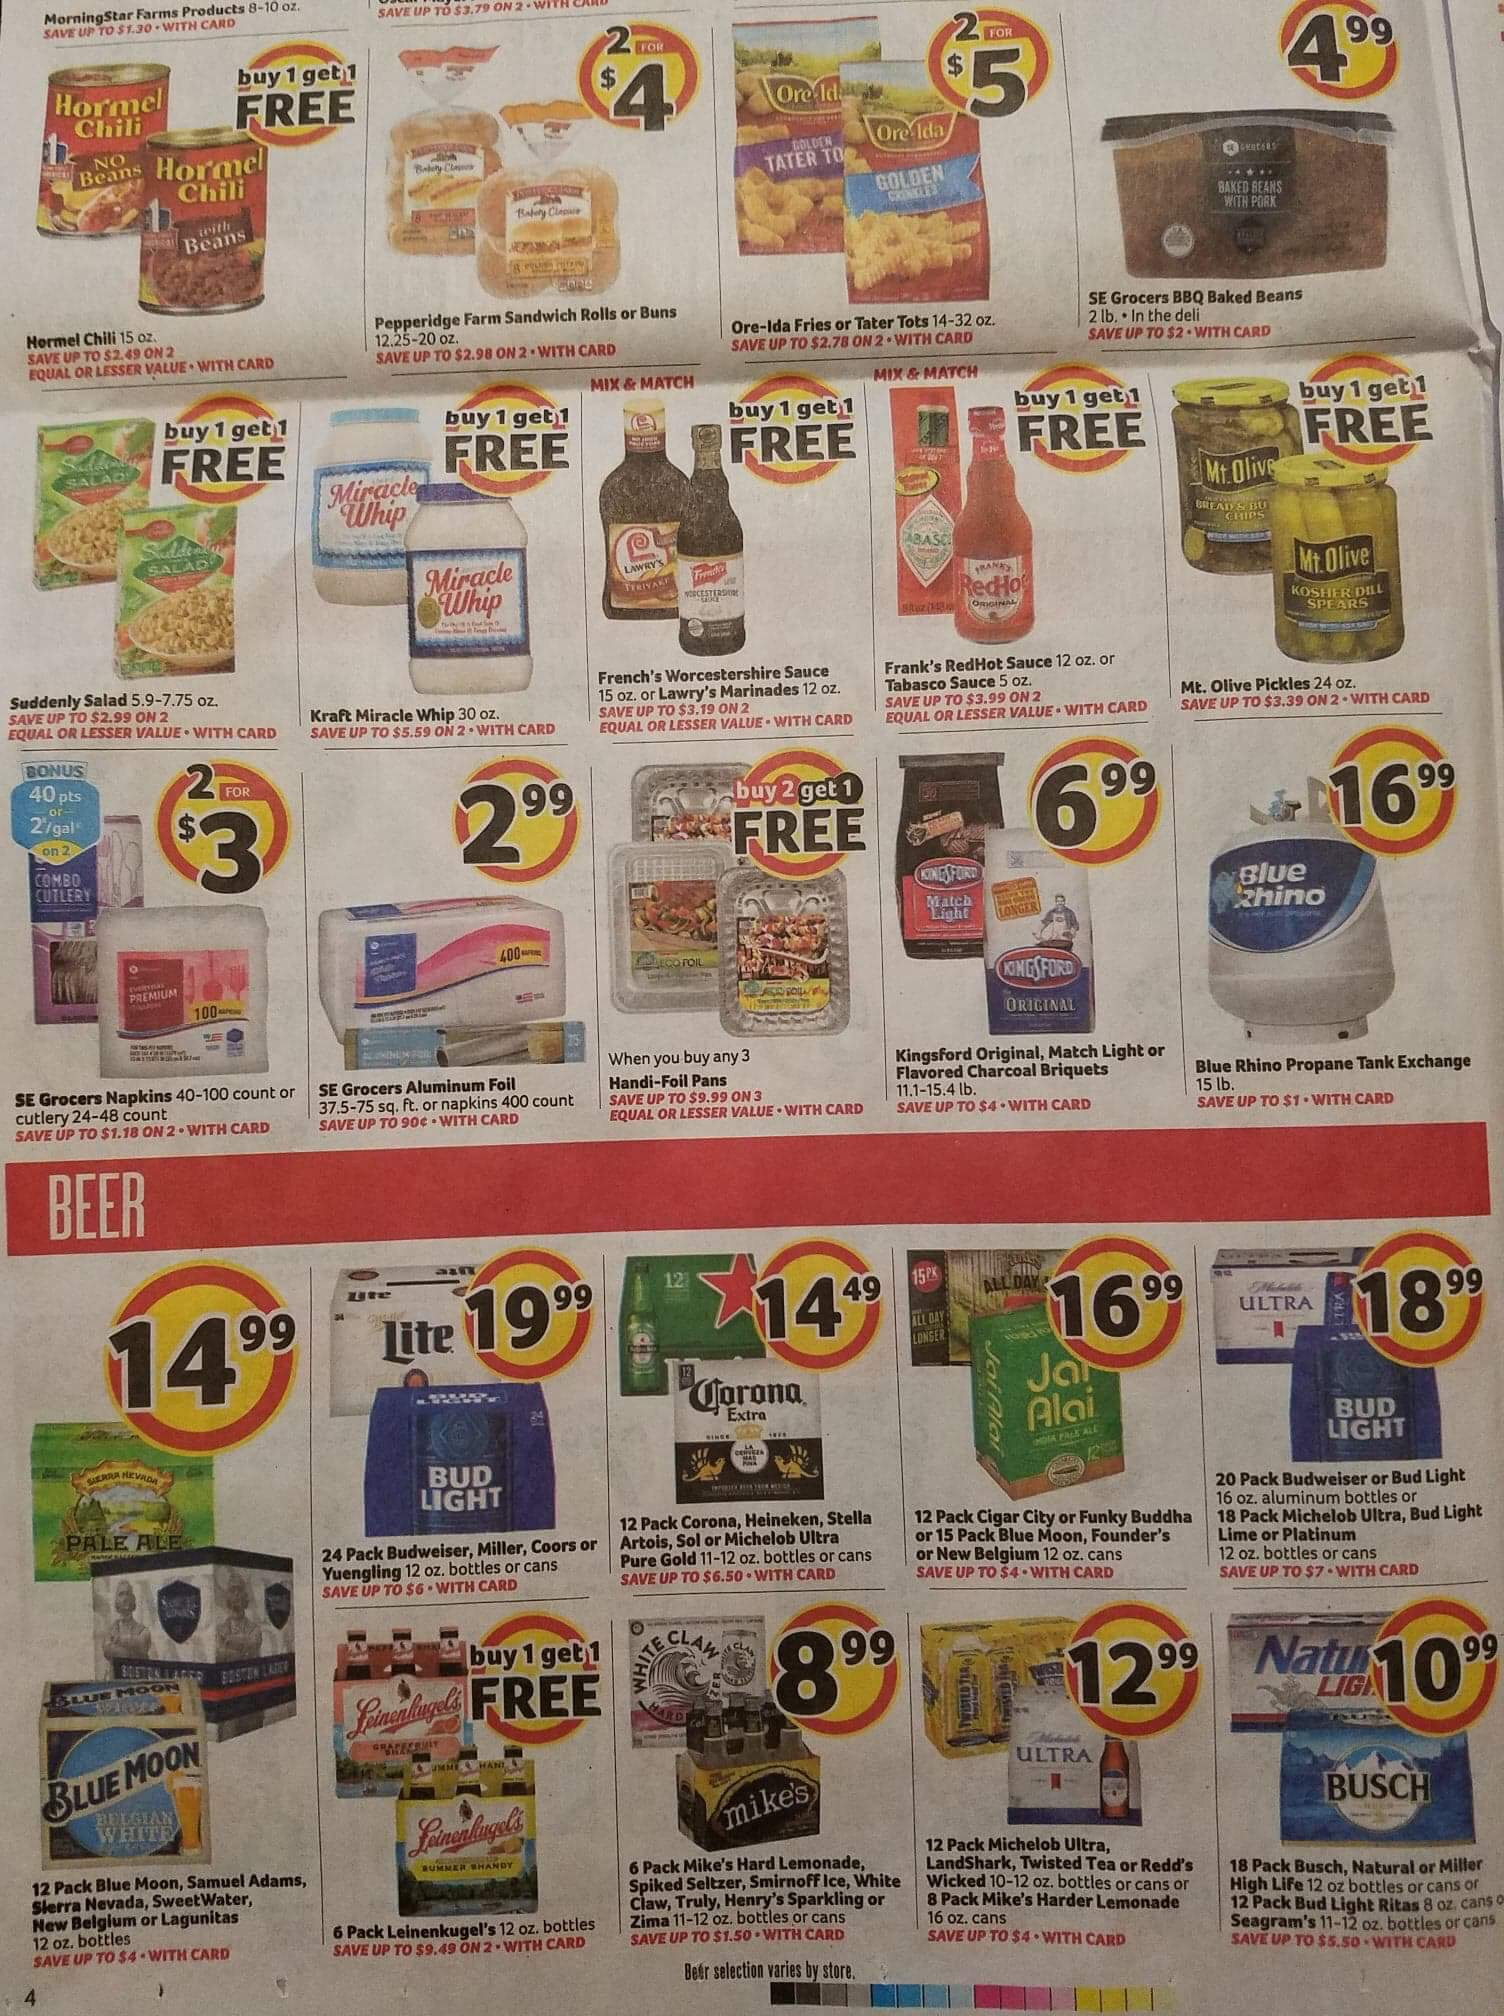 Winn Dixie AD Scan! 8/29 - 9/4 ⋆ Page 13 of 20 ⋆ Coupon Confidants